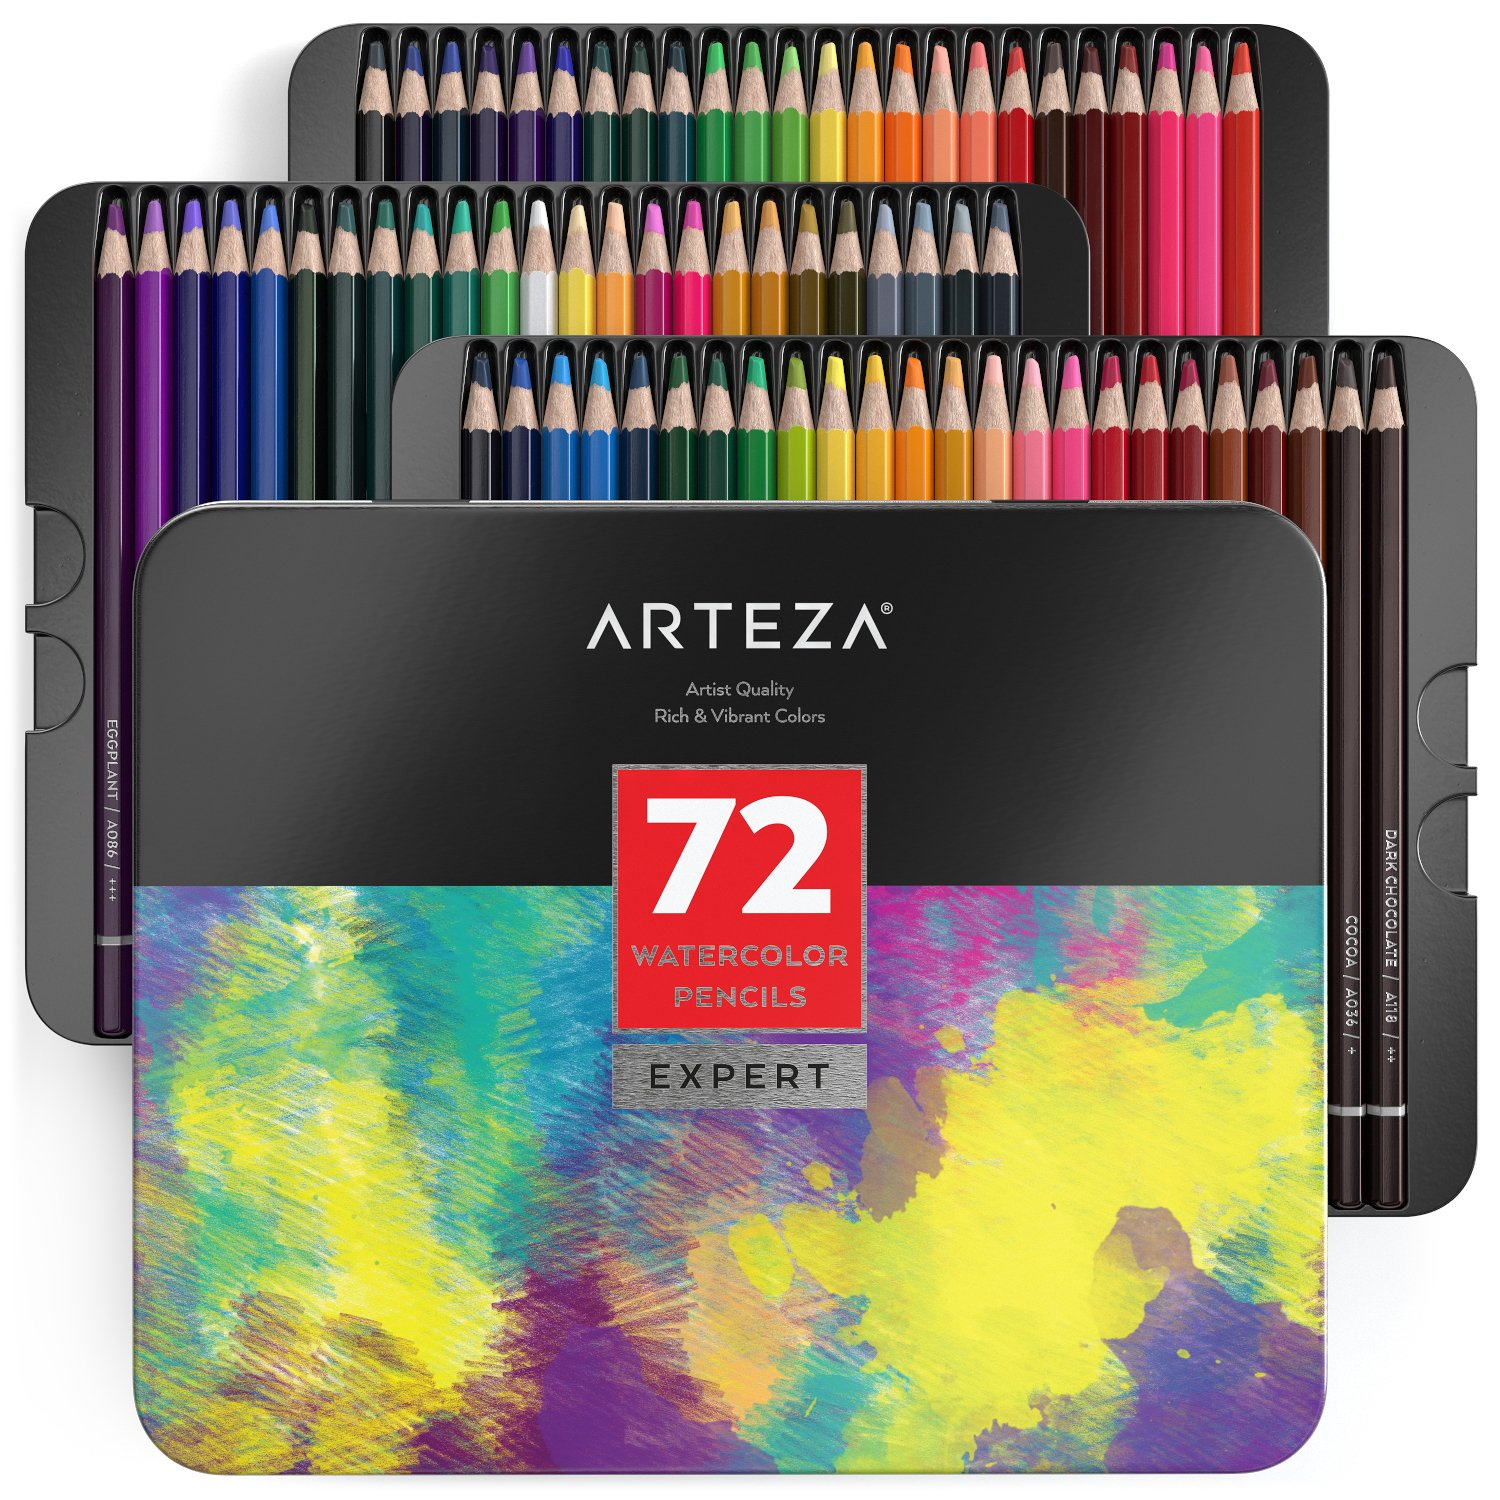 Arteza Professional Watercolor Pencils in Storage Tin, Set of 72, Multi Colored Art Drawing Pencils in Bright Assorted Shades, Great for Blending and Layering, for Beginners & Pro Artists ARTZ-8073